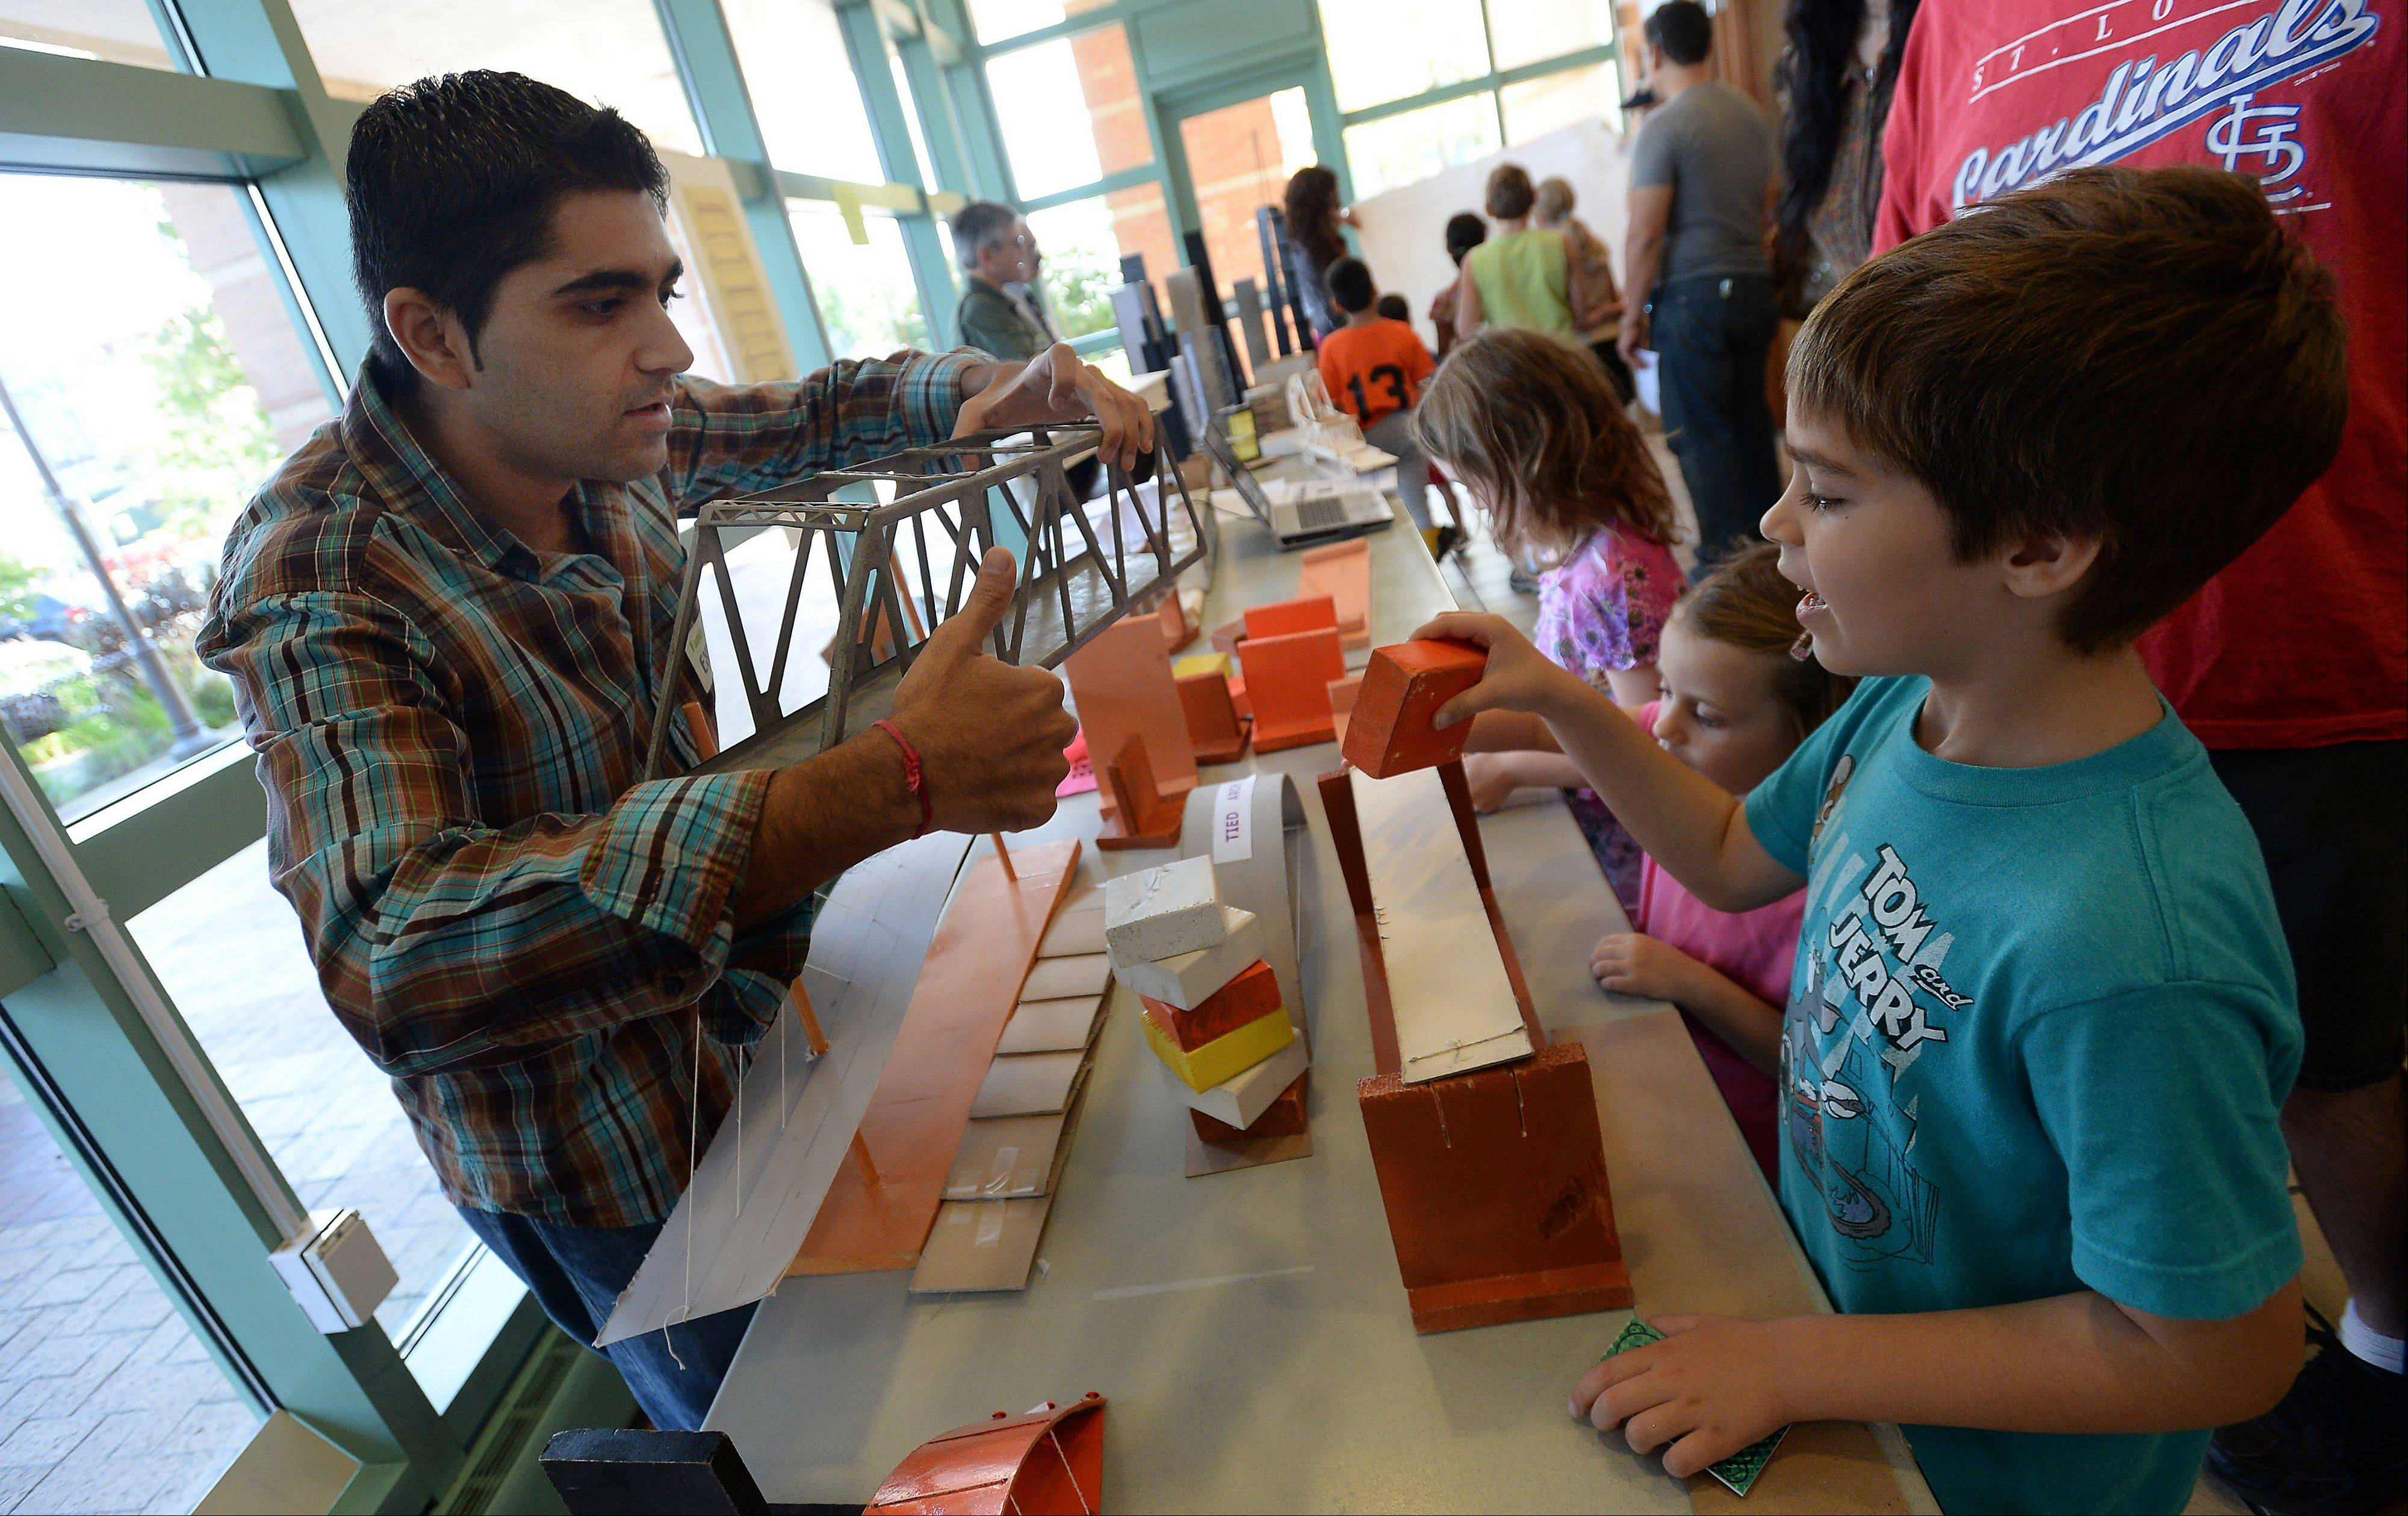 Sapan Trivedi of Schaumburg, a member of the Structural Engineers Association of Illinois, explains the design of a bridge to Teodor Djuric, 6, of Des Plaines at the fifth annual Family Science Expo, held Saturday at the Des Plaines Public Library.